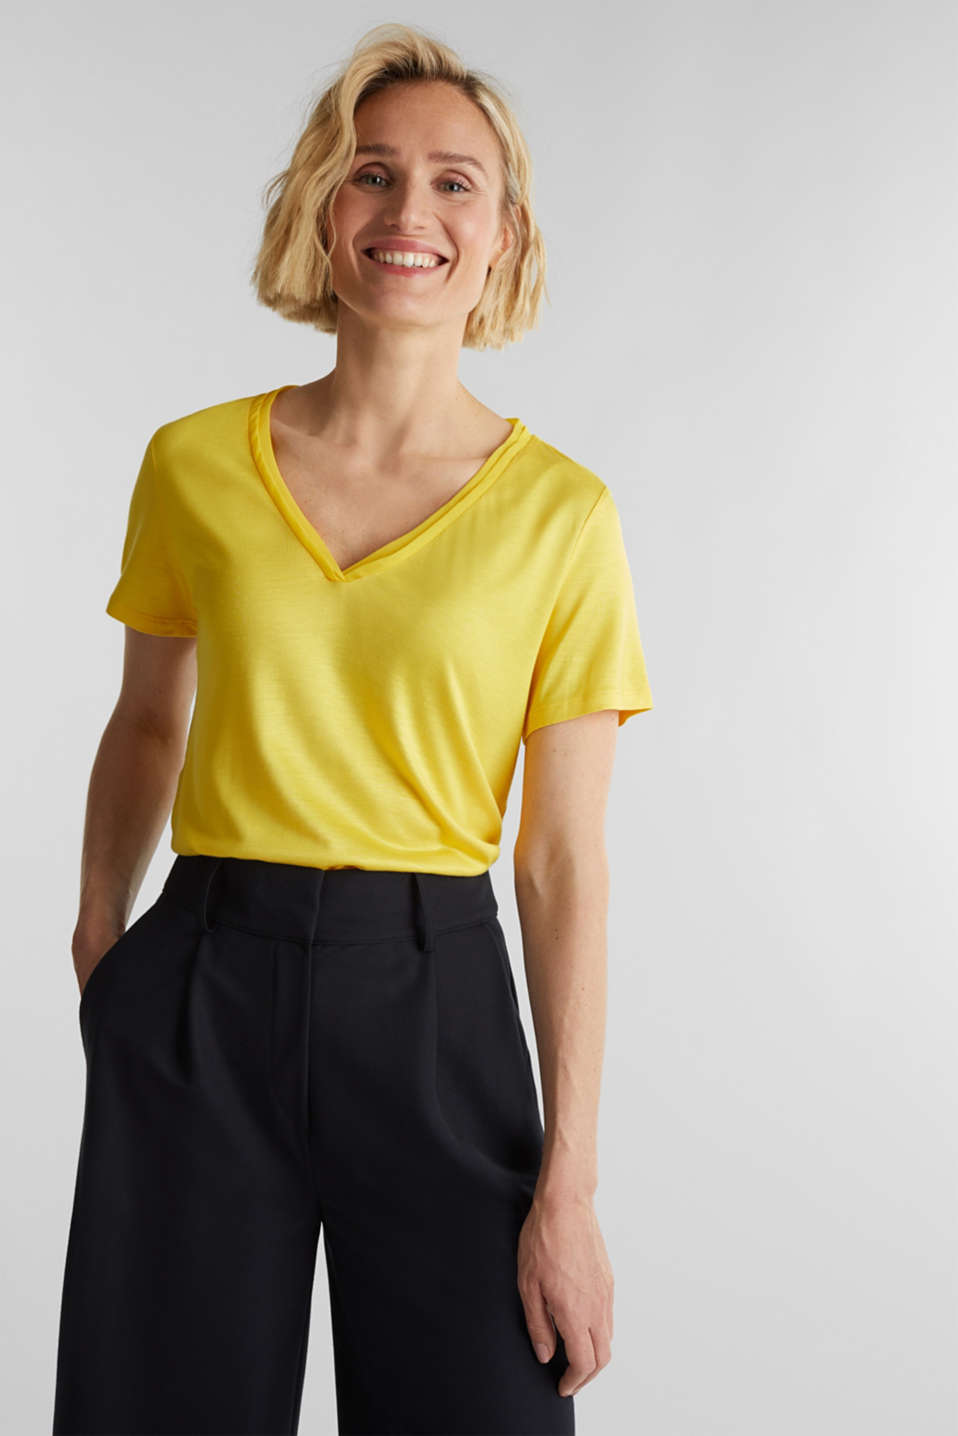 Esprit - T-shirt con scollo a V e bordi in chiffon